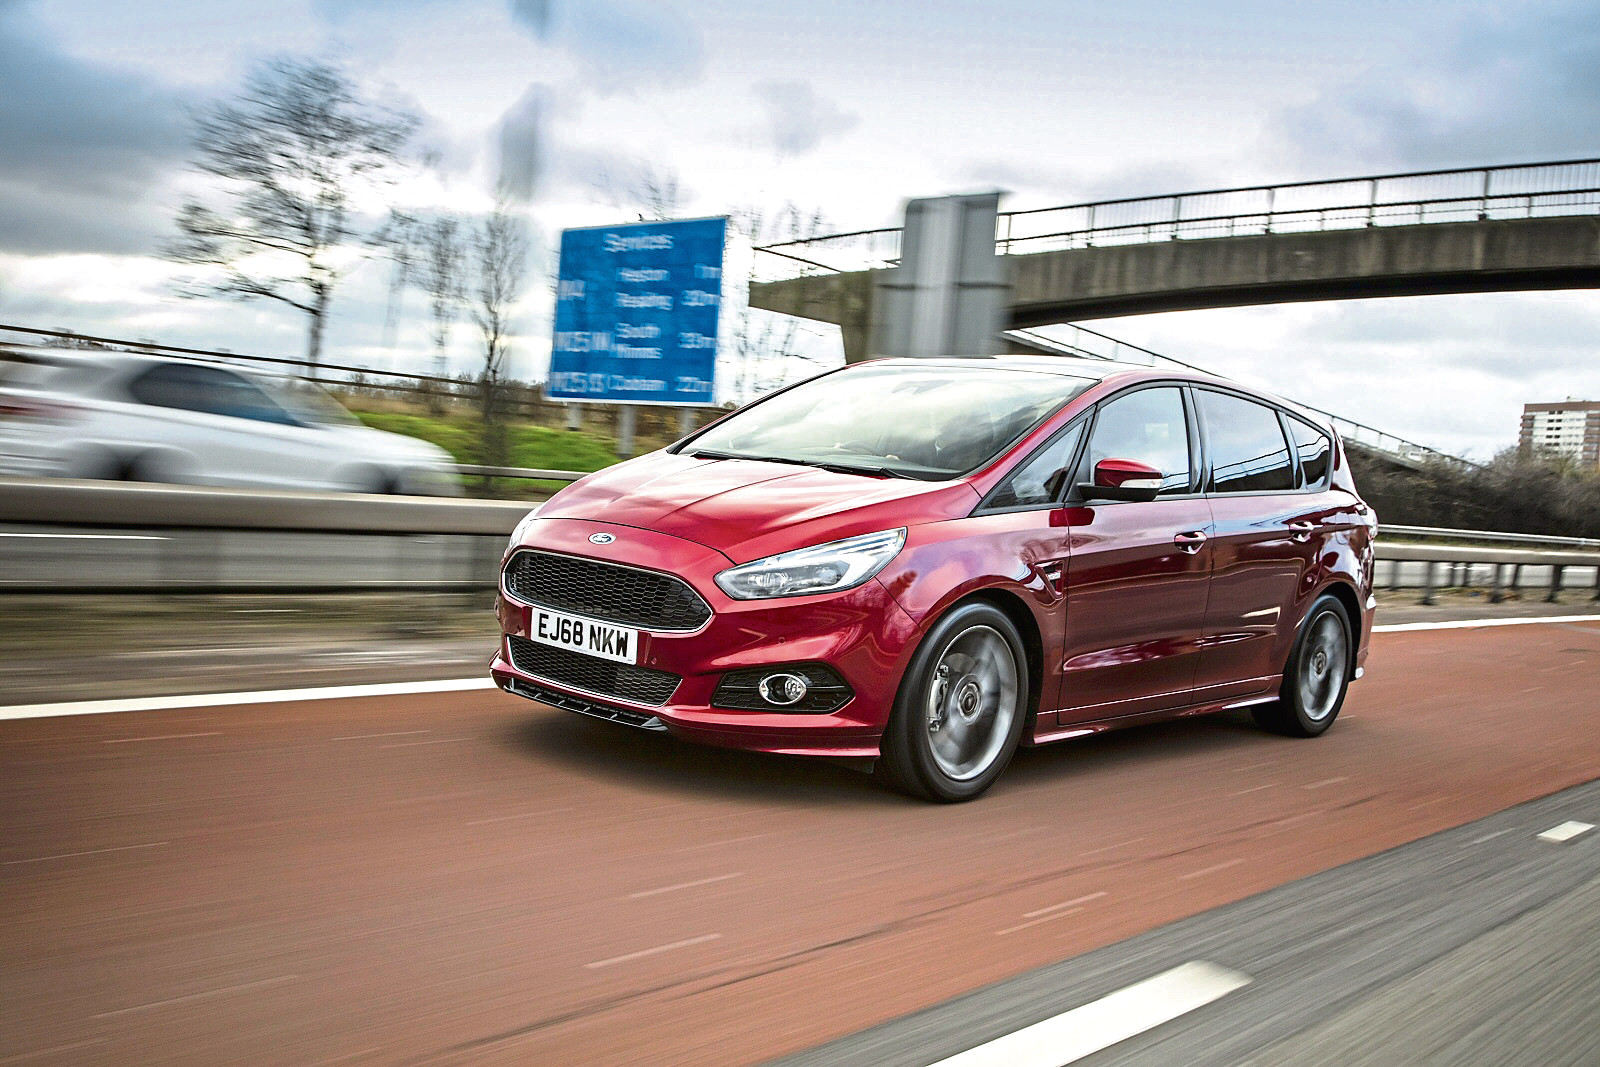 Ford Smax 20 EcoBlue